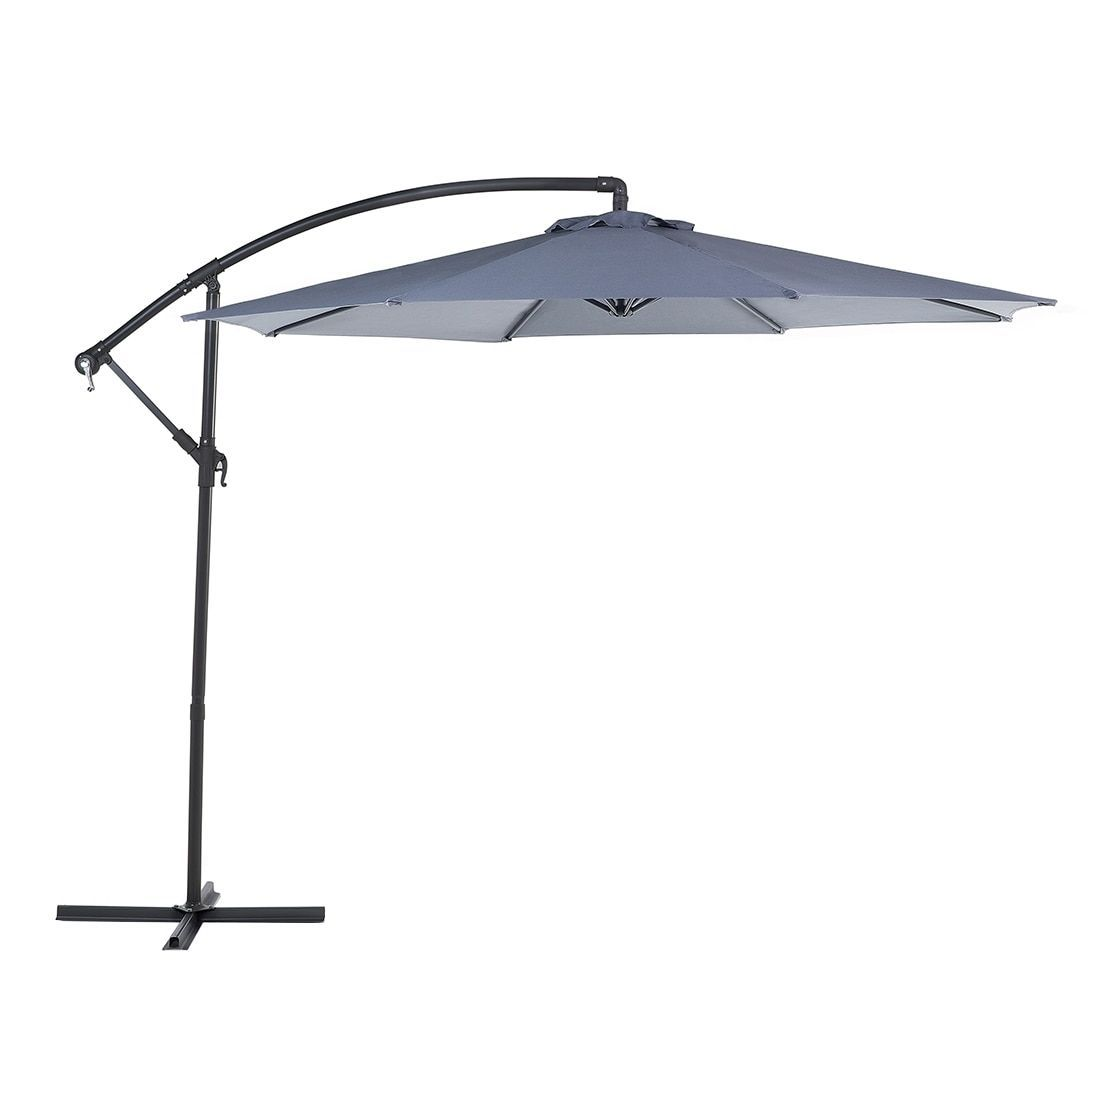 Genial Beliani Cantilever Patio Umbrella   Side Post Umbrella   Ravenna Dark